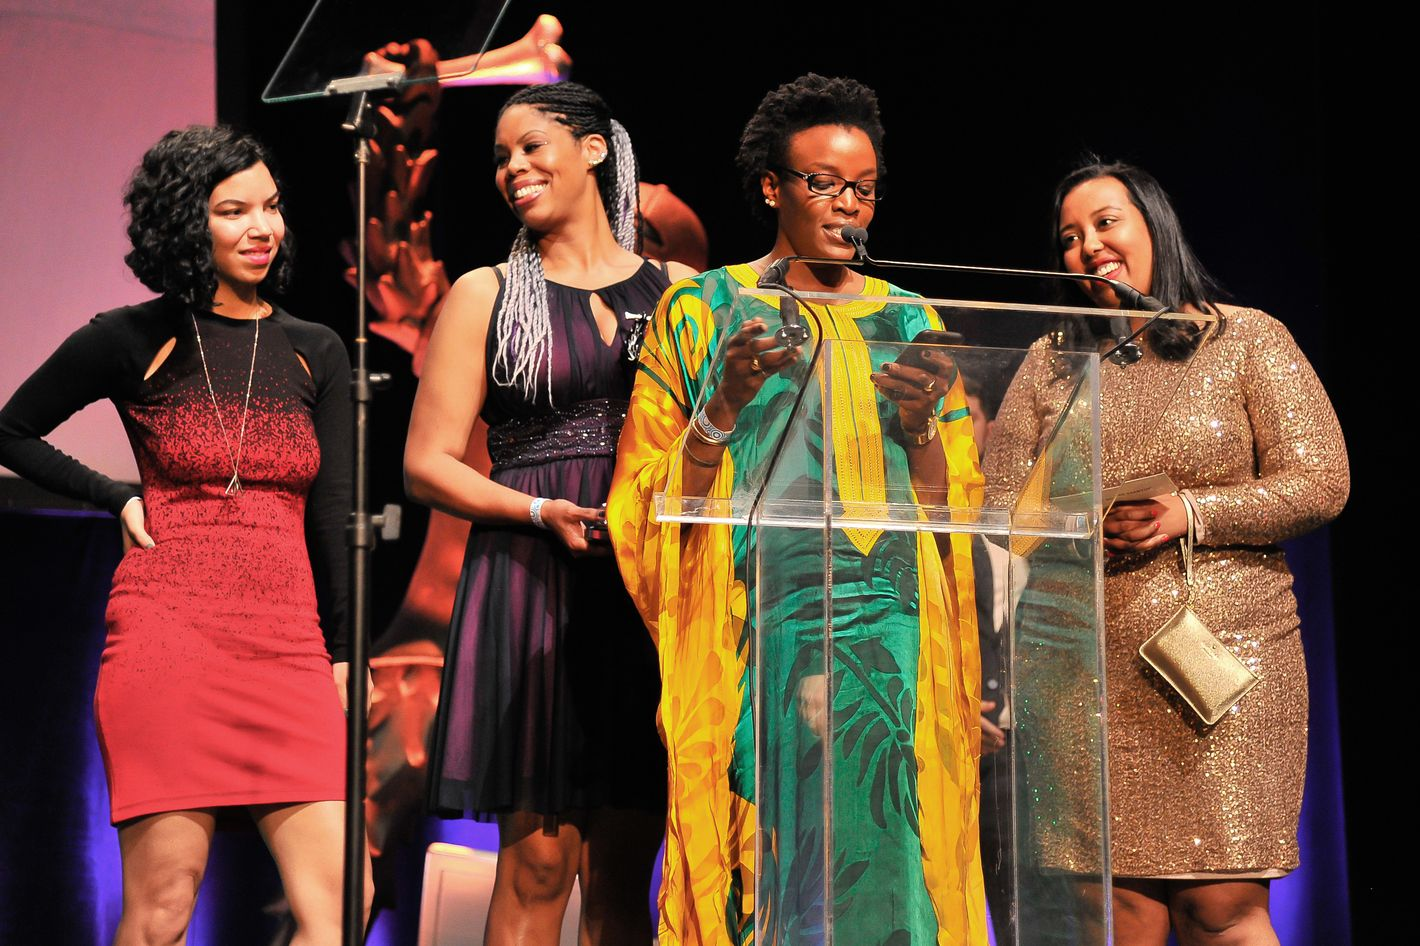 4 Female Engineers of Color Accepted a Major Start-up Award Last Night